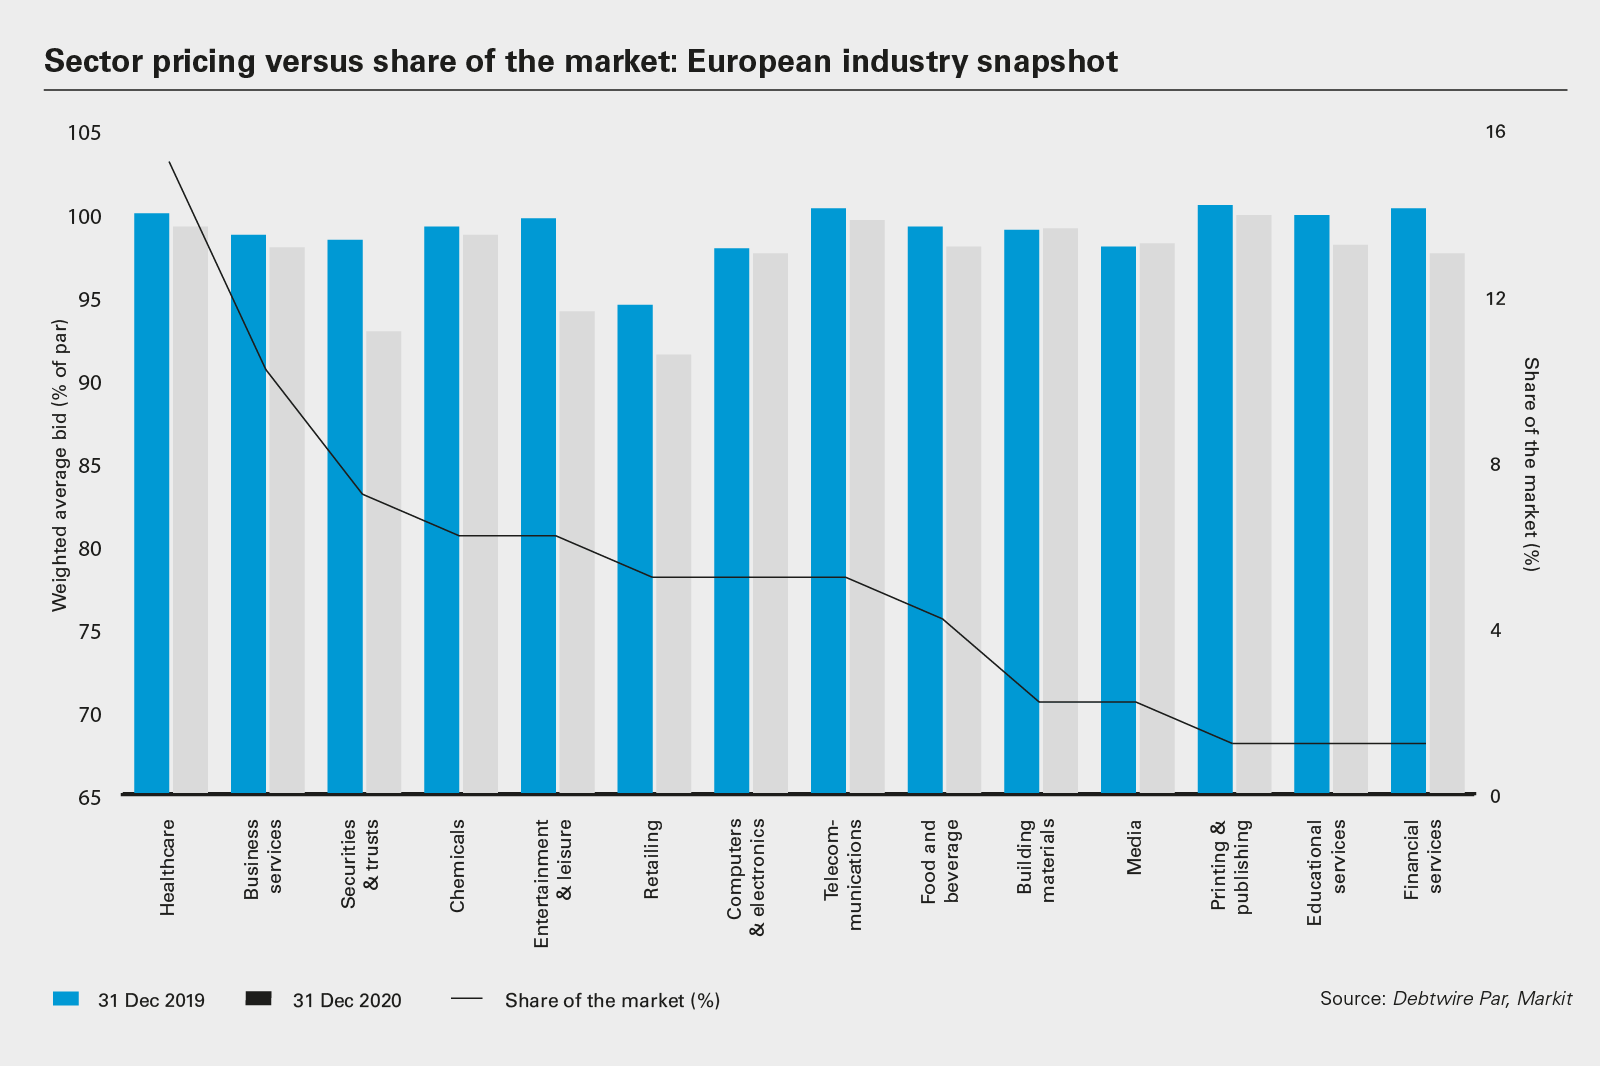 Sector pricing versus share of the market: European industry snapshot